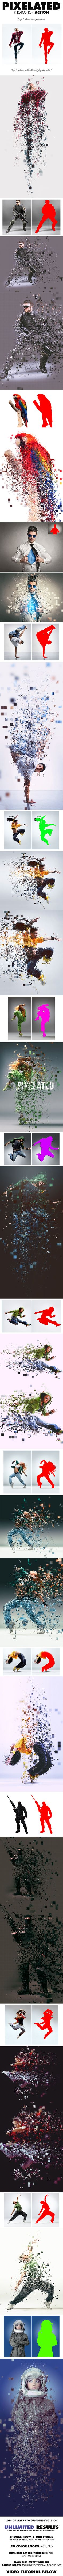 Pixelated Photoshop Action - Photo Effects Actions